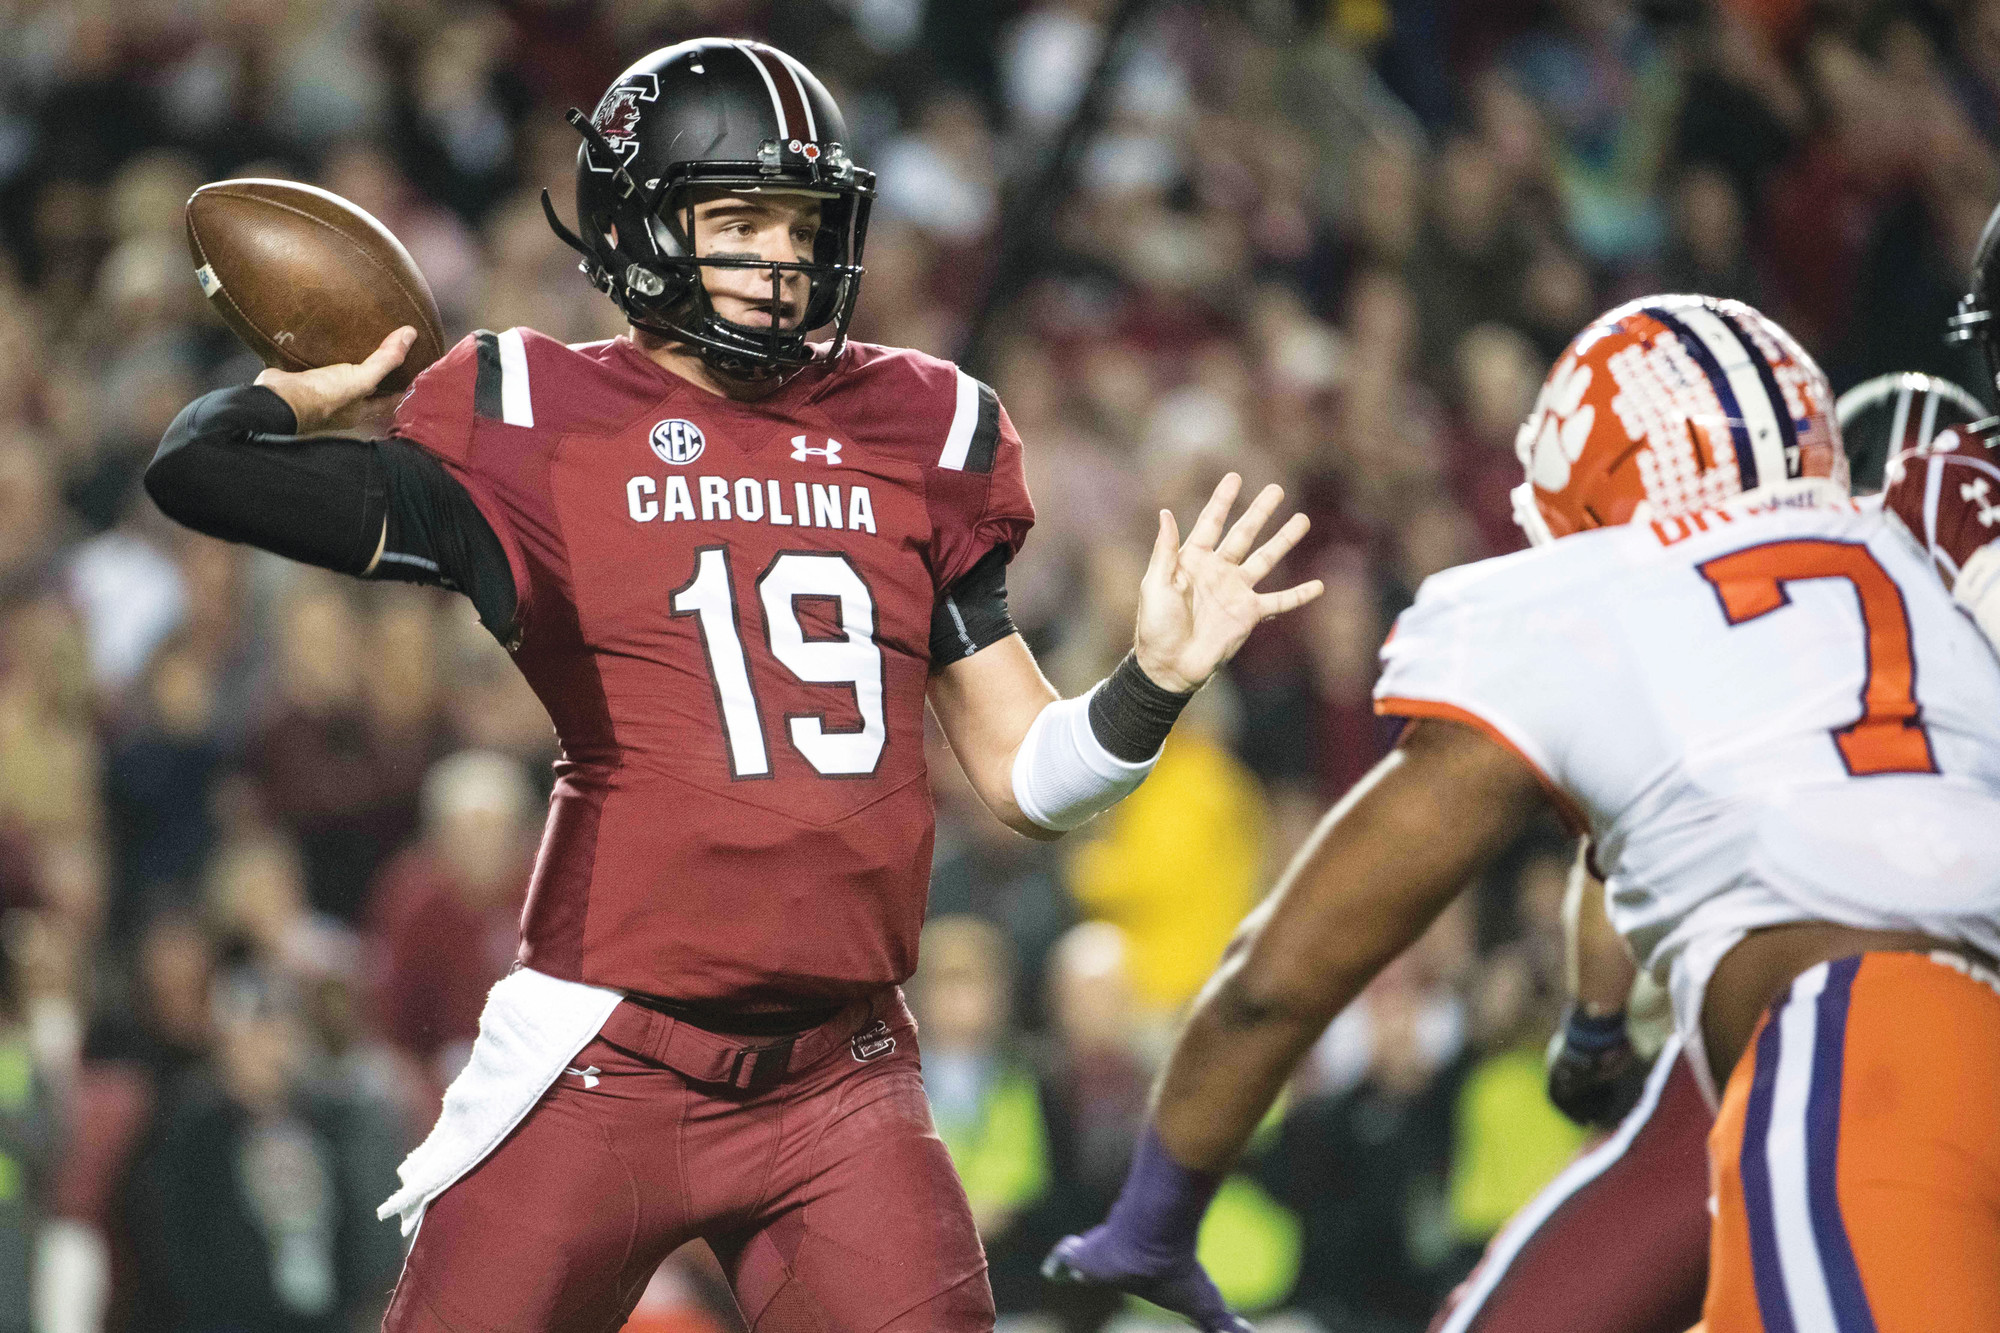 THE ASSOCIATED PRESS  Expectations are high for South Carolina and quarterback Jake Bentley (19) after the Gamecocks went 9-4 in Will Muschamp's second season.